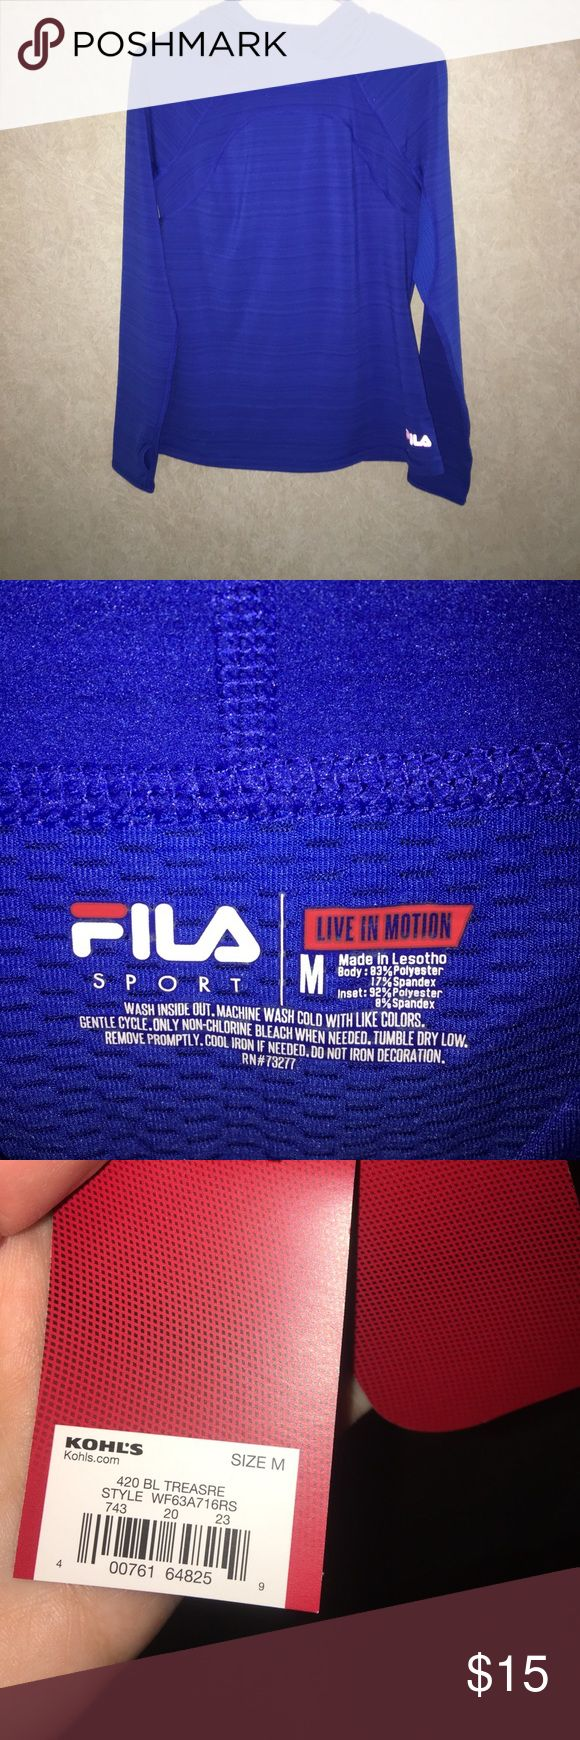 NWT FILA Athletic Hoodie Brand new thin hoodie great for working out in or just to wear. Received this as a gift but it's too small for me. Has a convenient zipper on the back side and is lightly fleeced lined. Any other question can be left in the comments😊 Offers accepted 💕 Fila Tops Sweatshirts & Hoodies